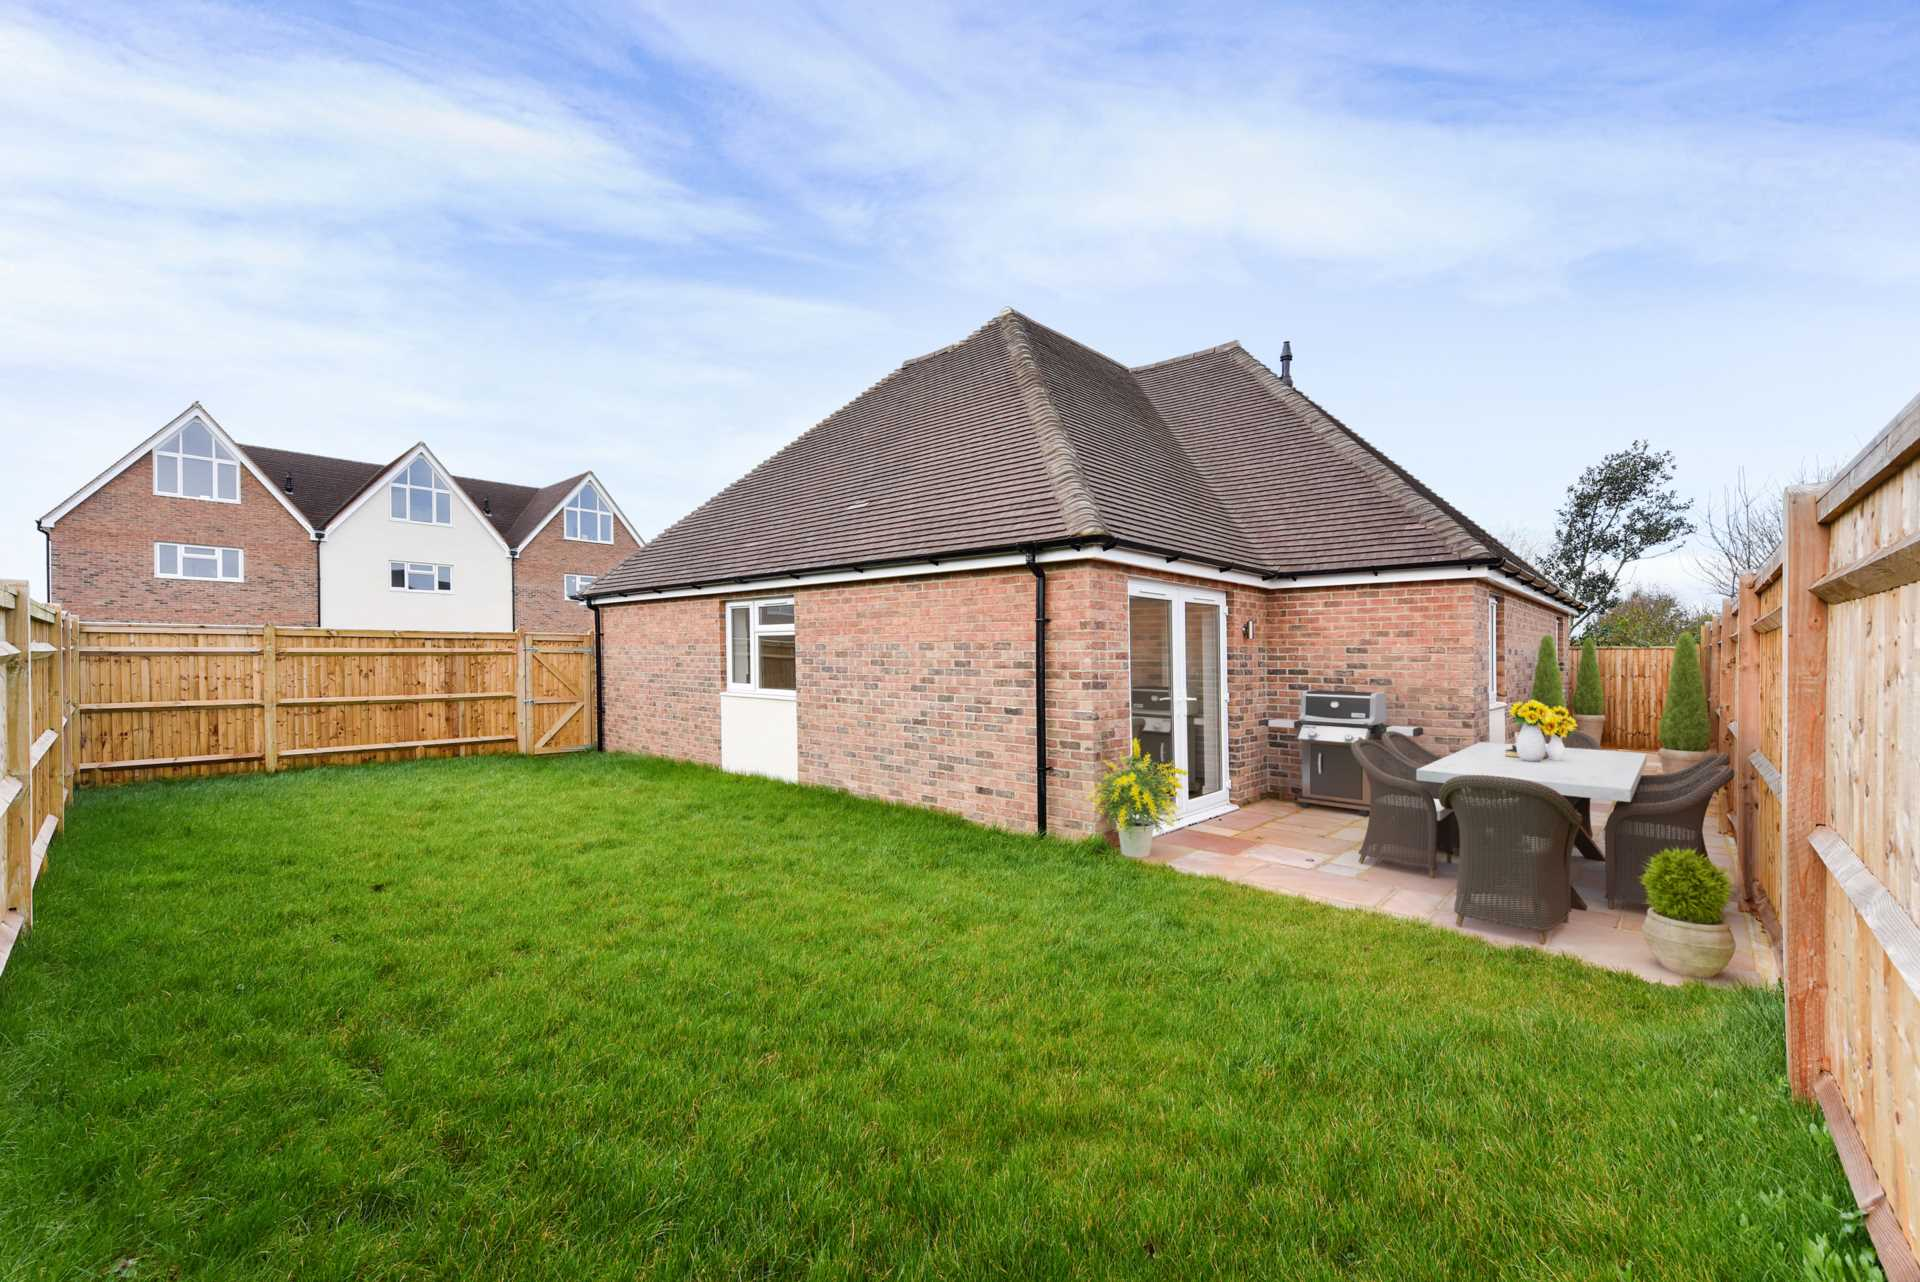 Stocks Lane, East Wittering, West Sussex, Image 10